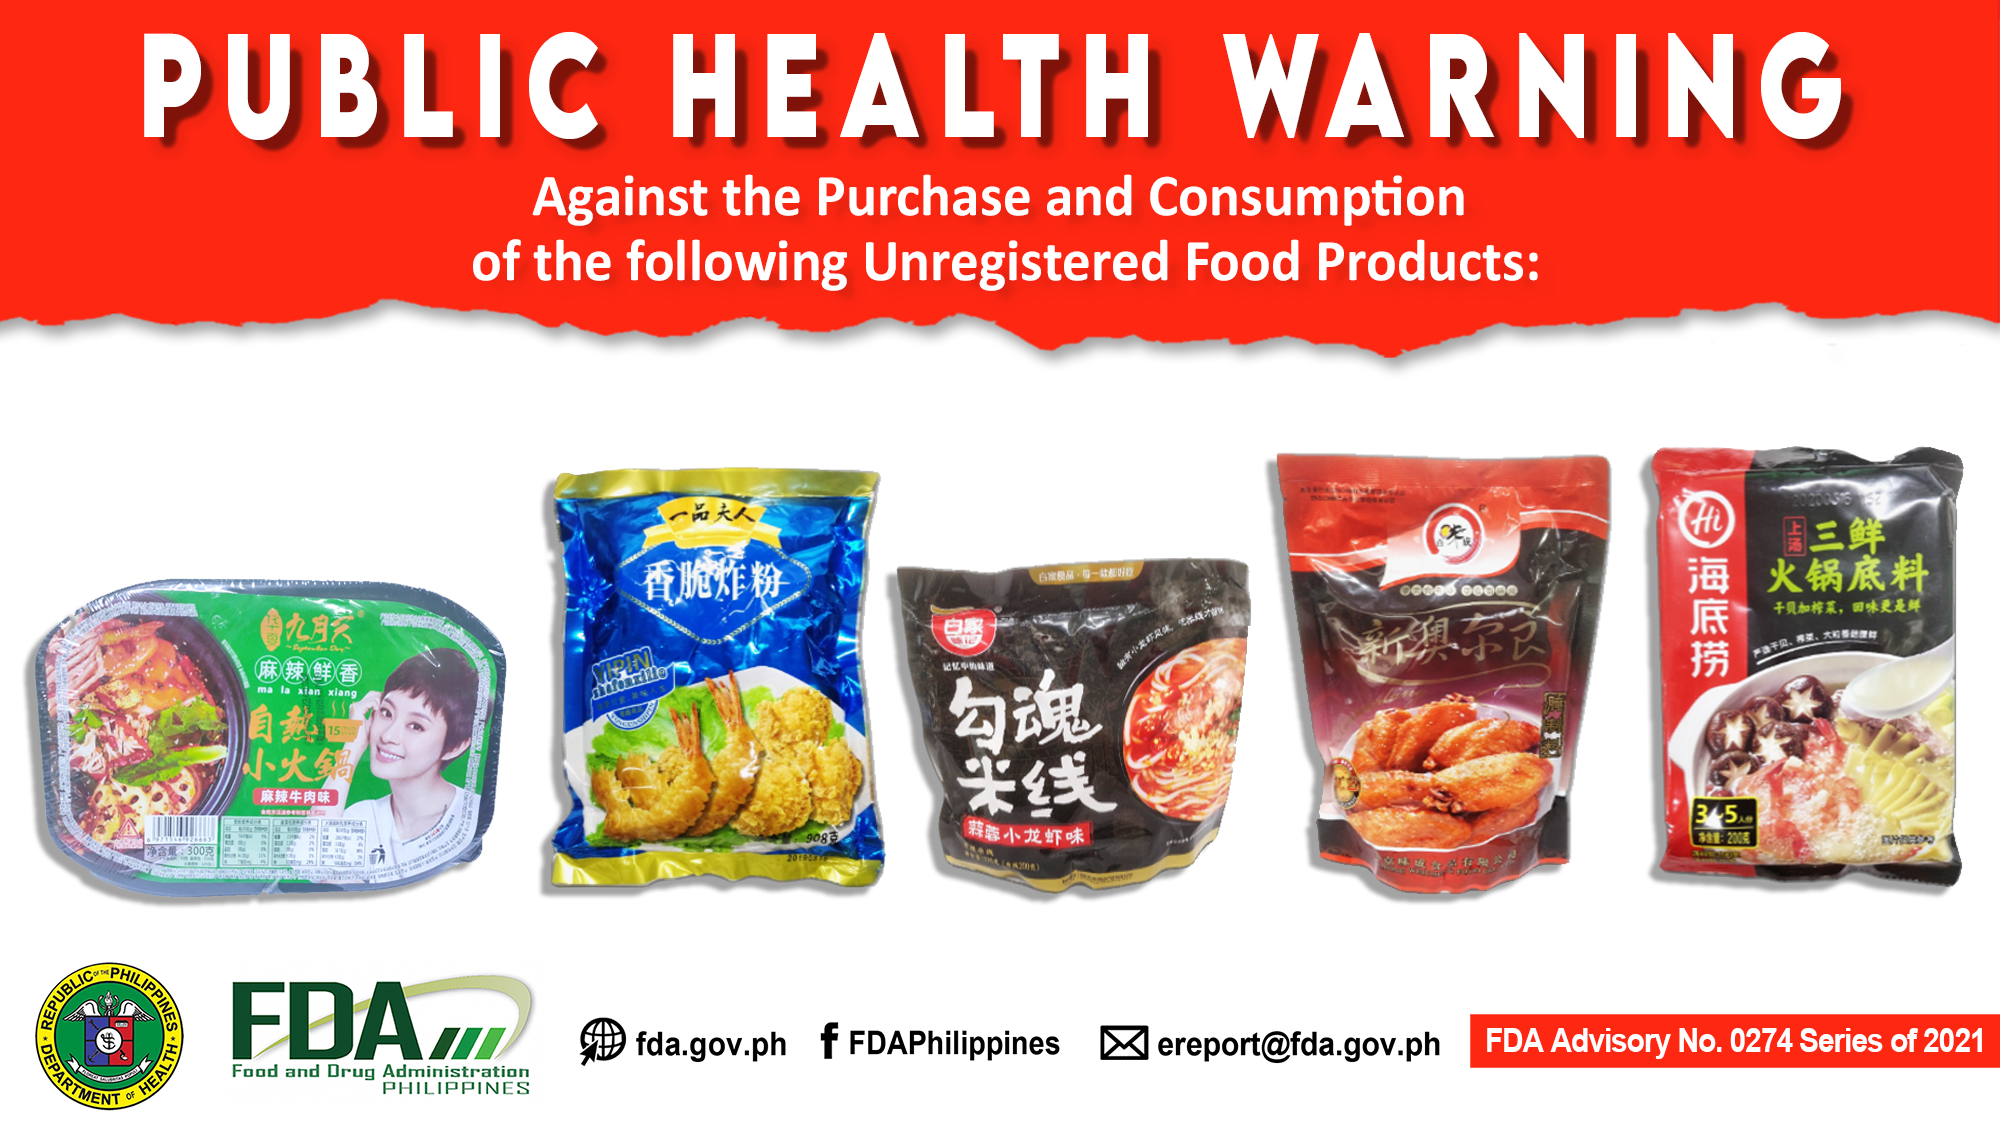 FDA Advisory No.2021-0274 || Public Health Warning Against the Purchase and Consumption of the following Unregistered Food Products: